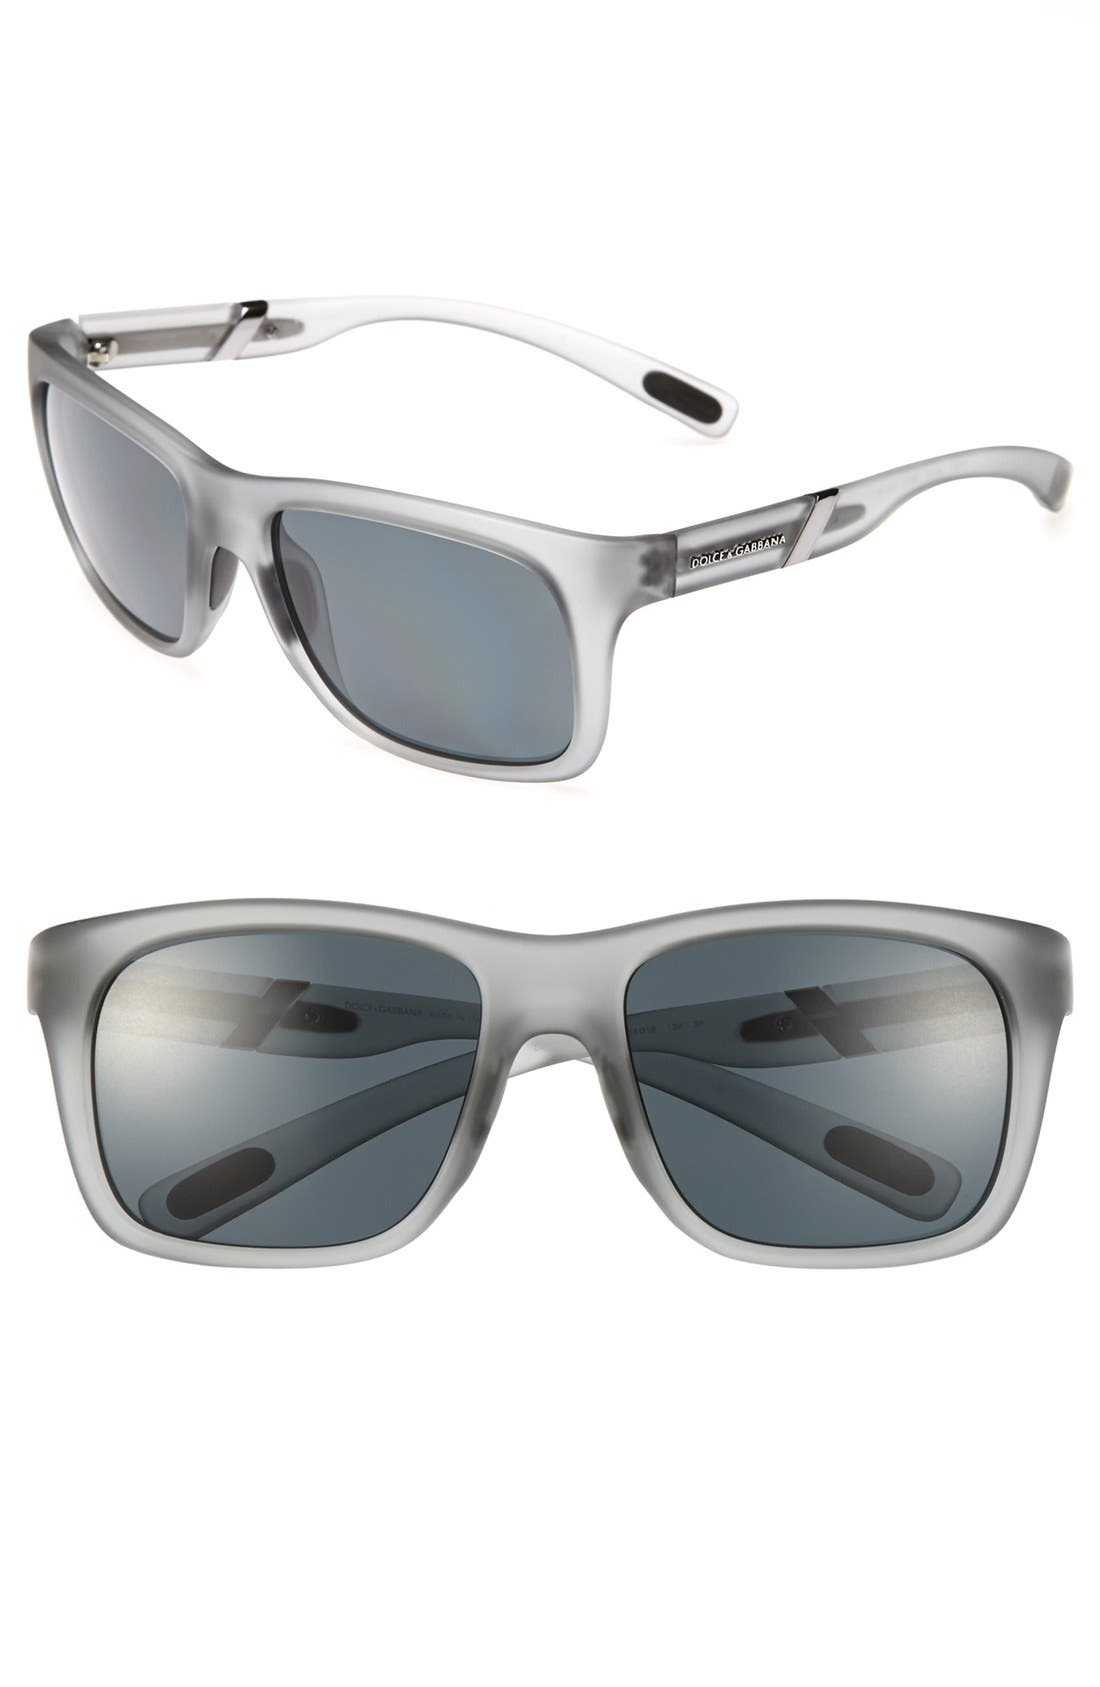 Alternate Image 1 Selected - Dolce&Gabbana 'Gym Classic' 56mm Sunglasses